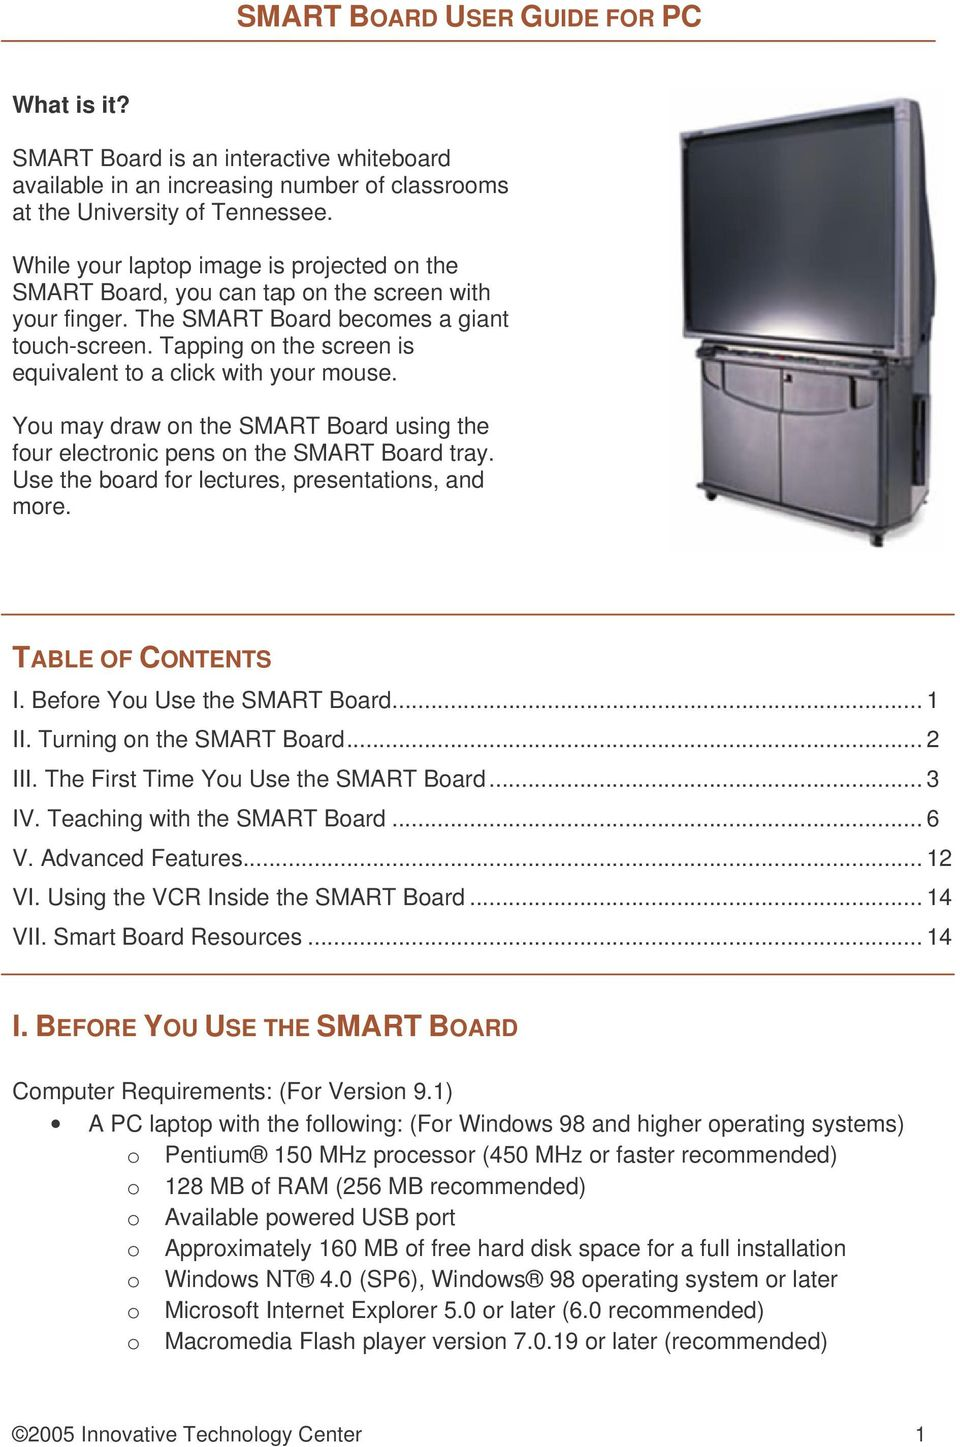 smart board user guide for pc table of contents i before you use rh docplayer net smart board games for children smart board games for children